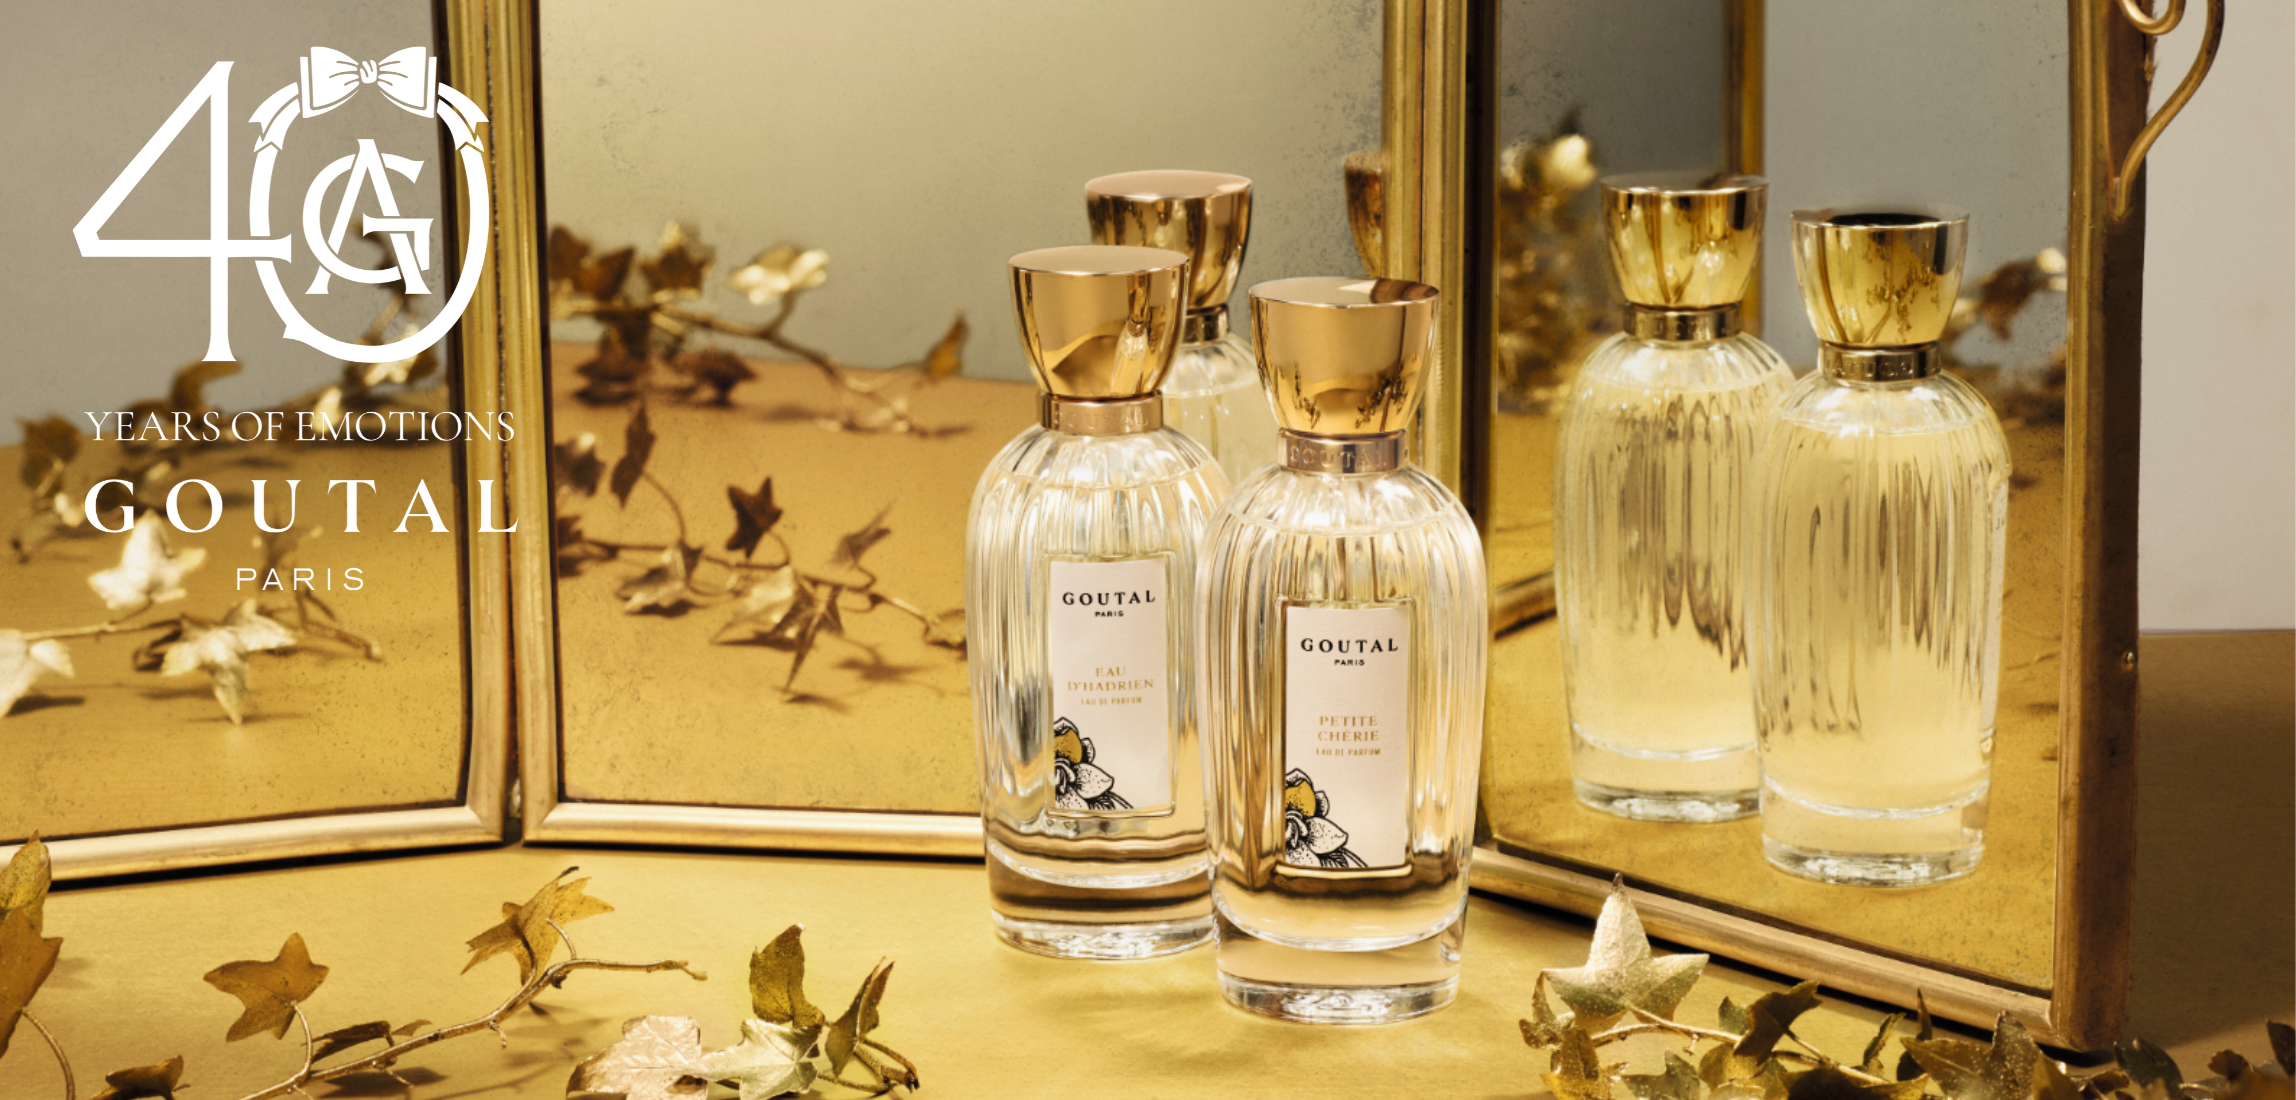 Goutal celebrates its 40th Anniversary